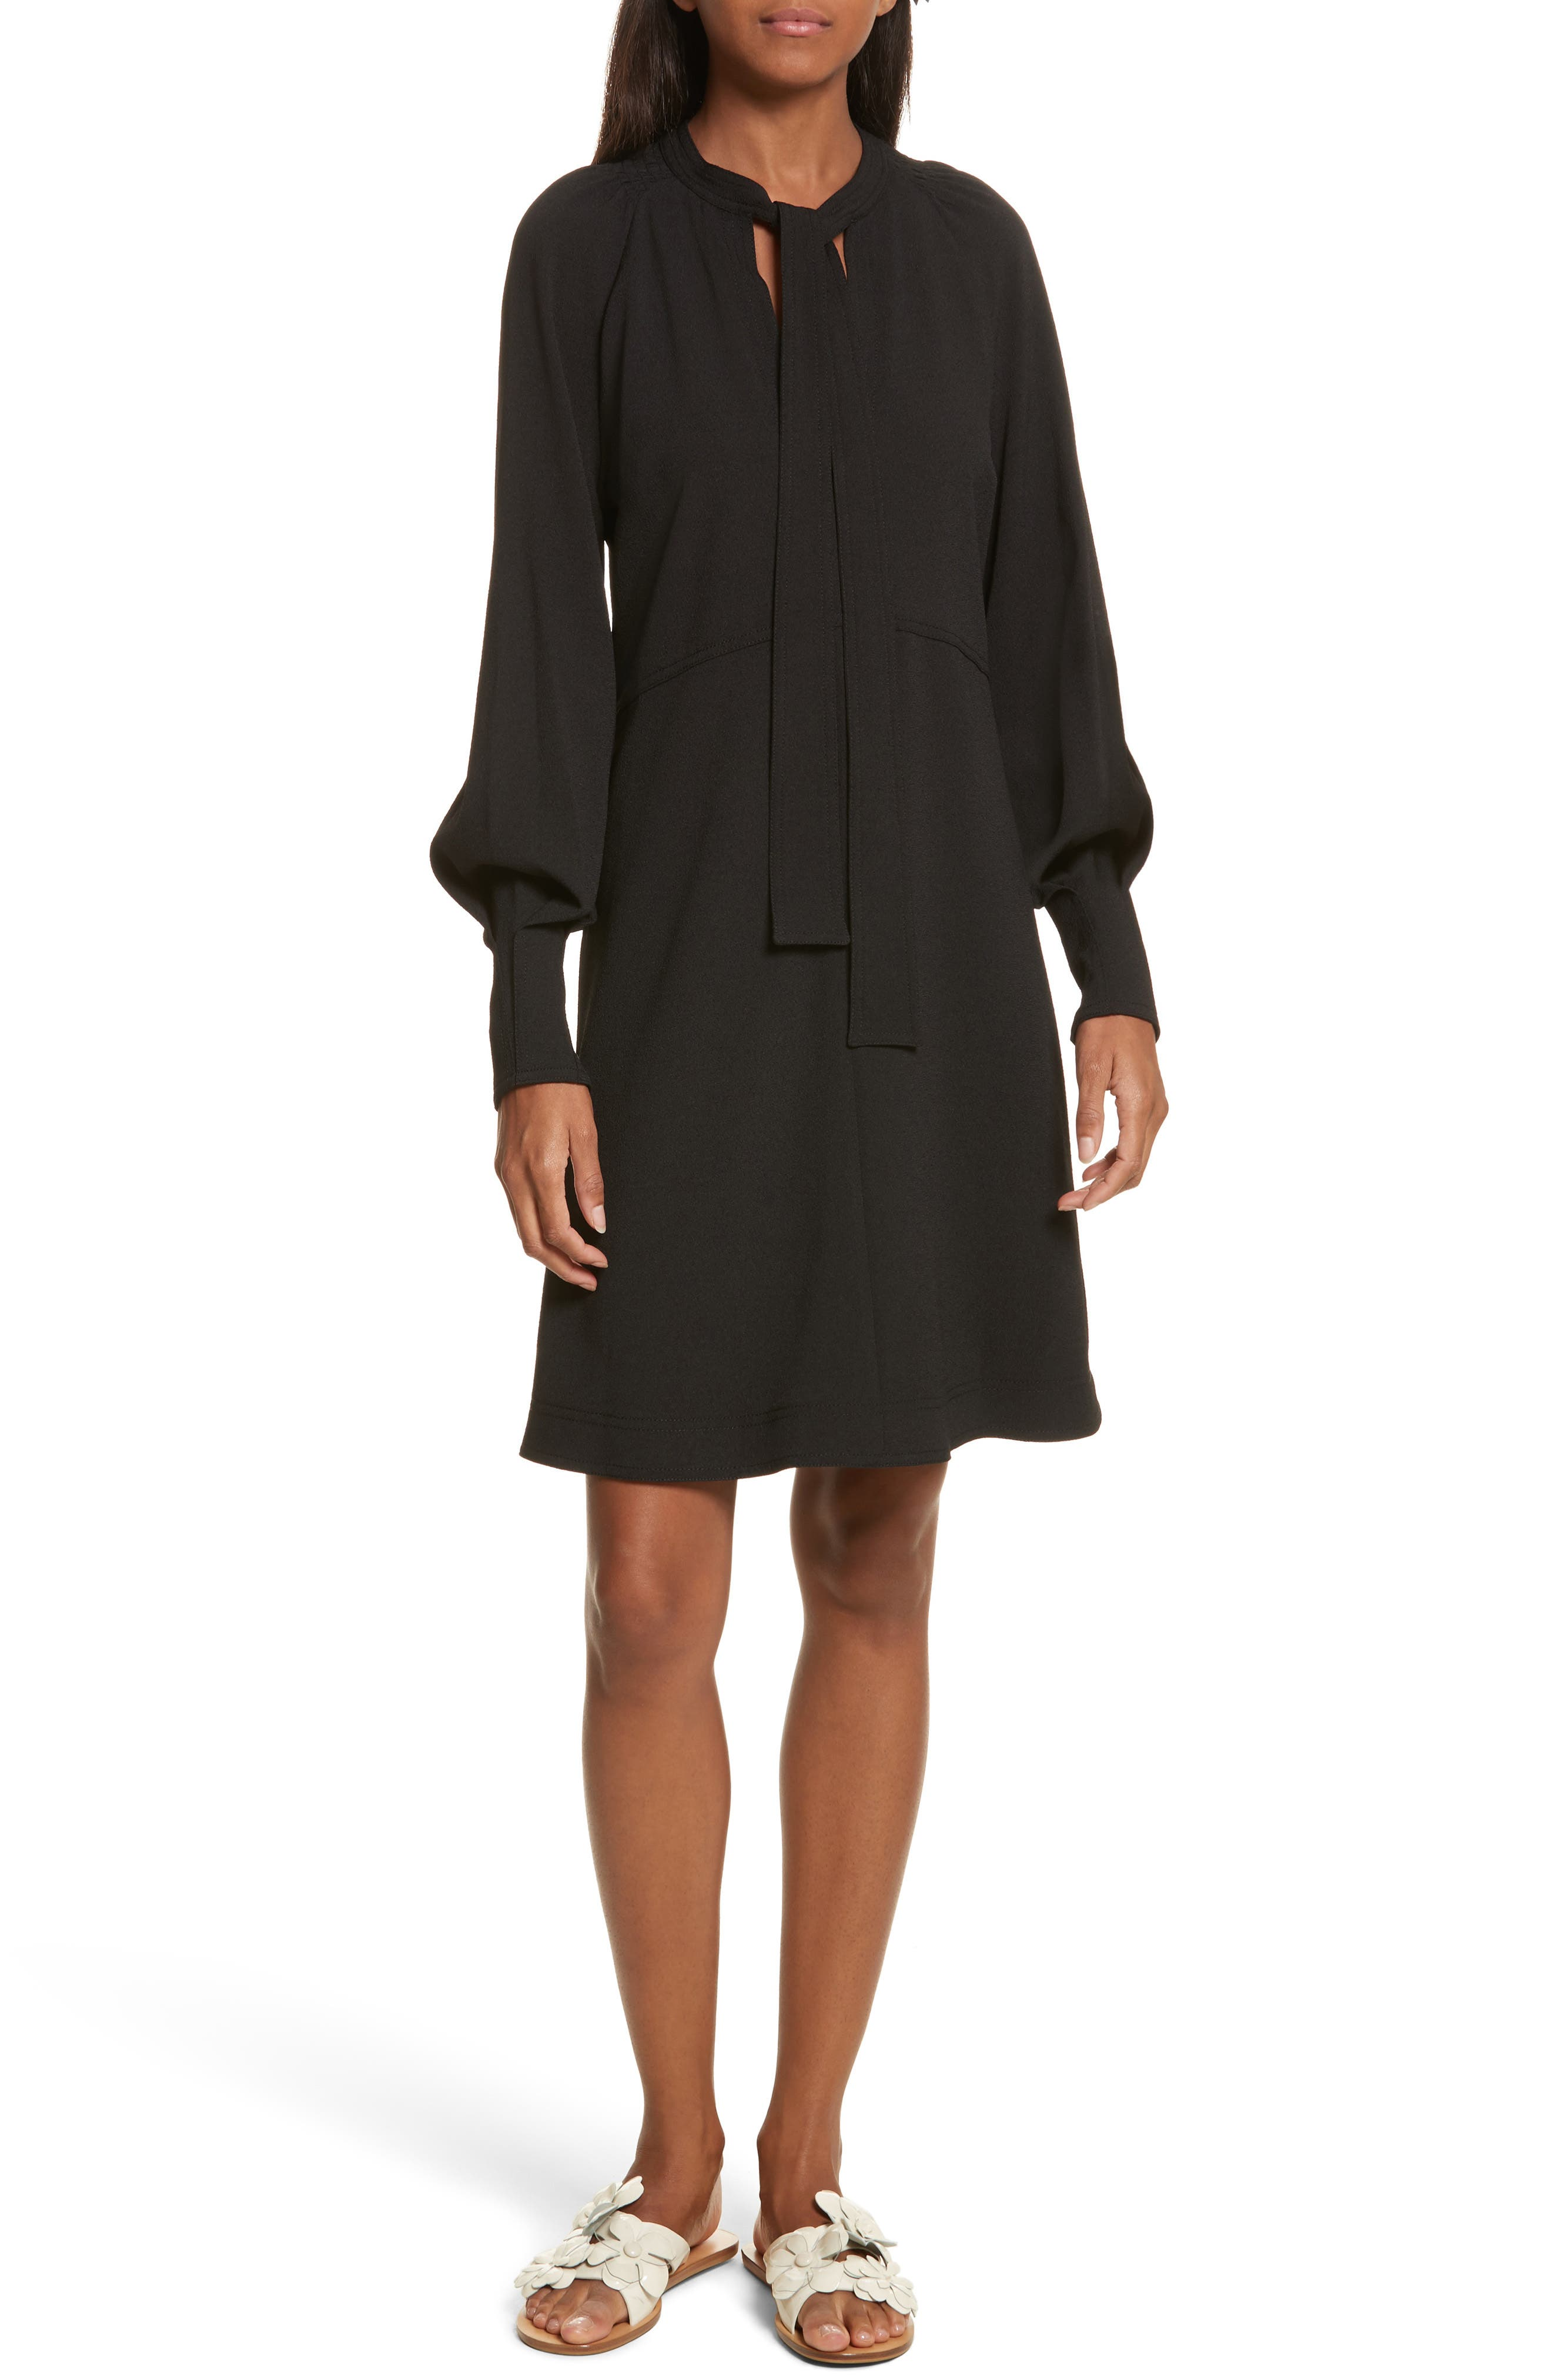 Main Image - See by Chloé Crepe Tie Neck Dress